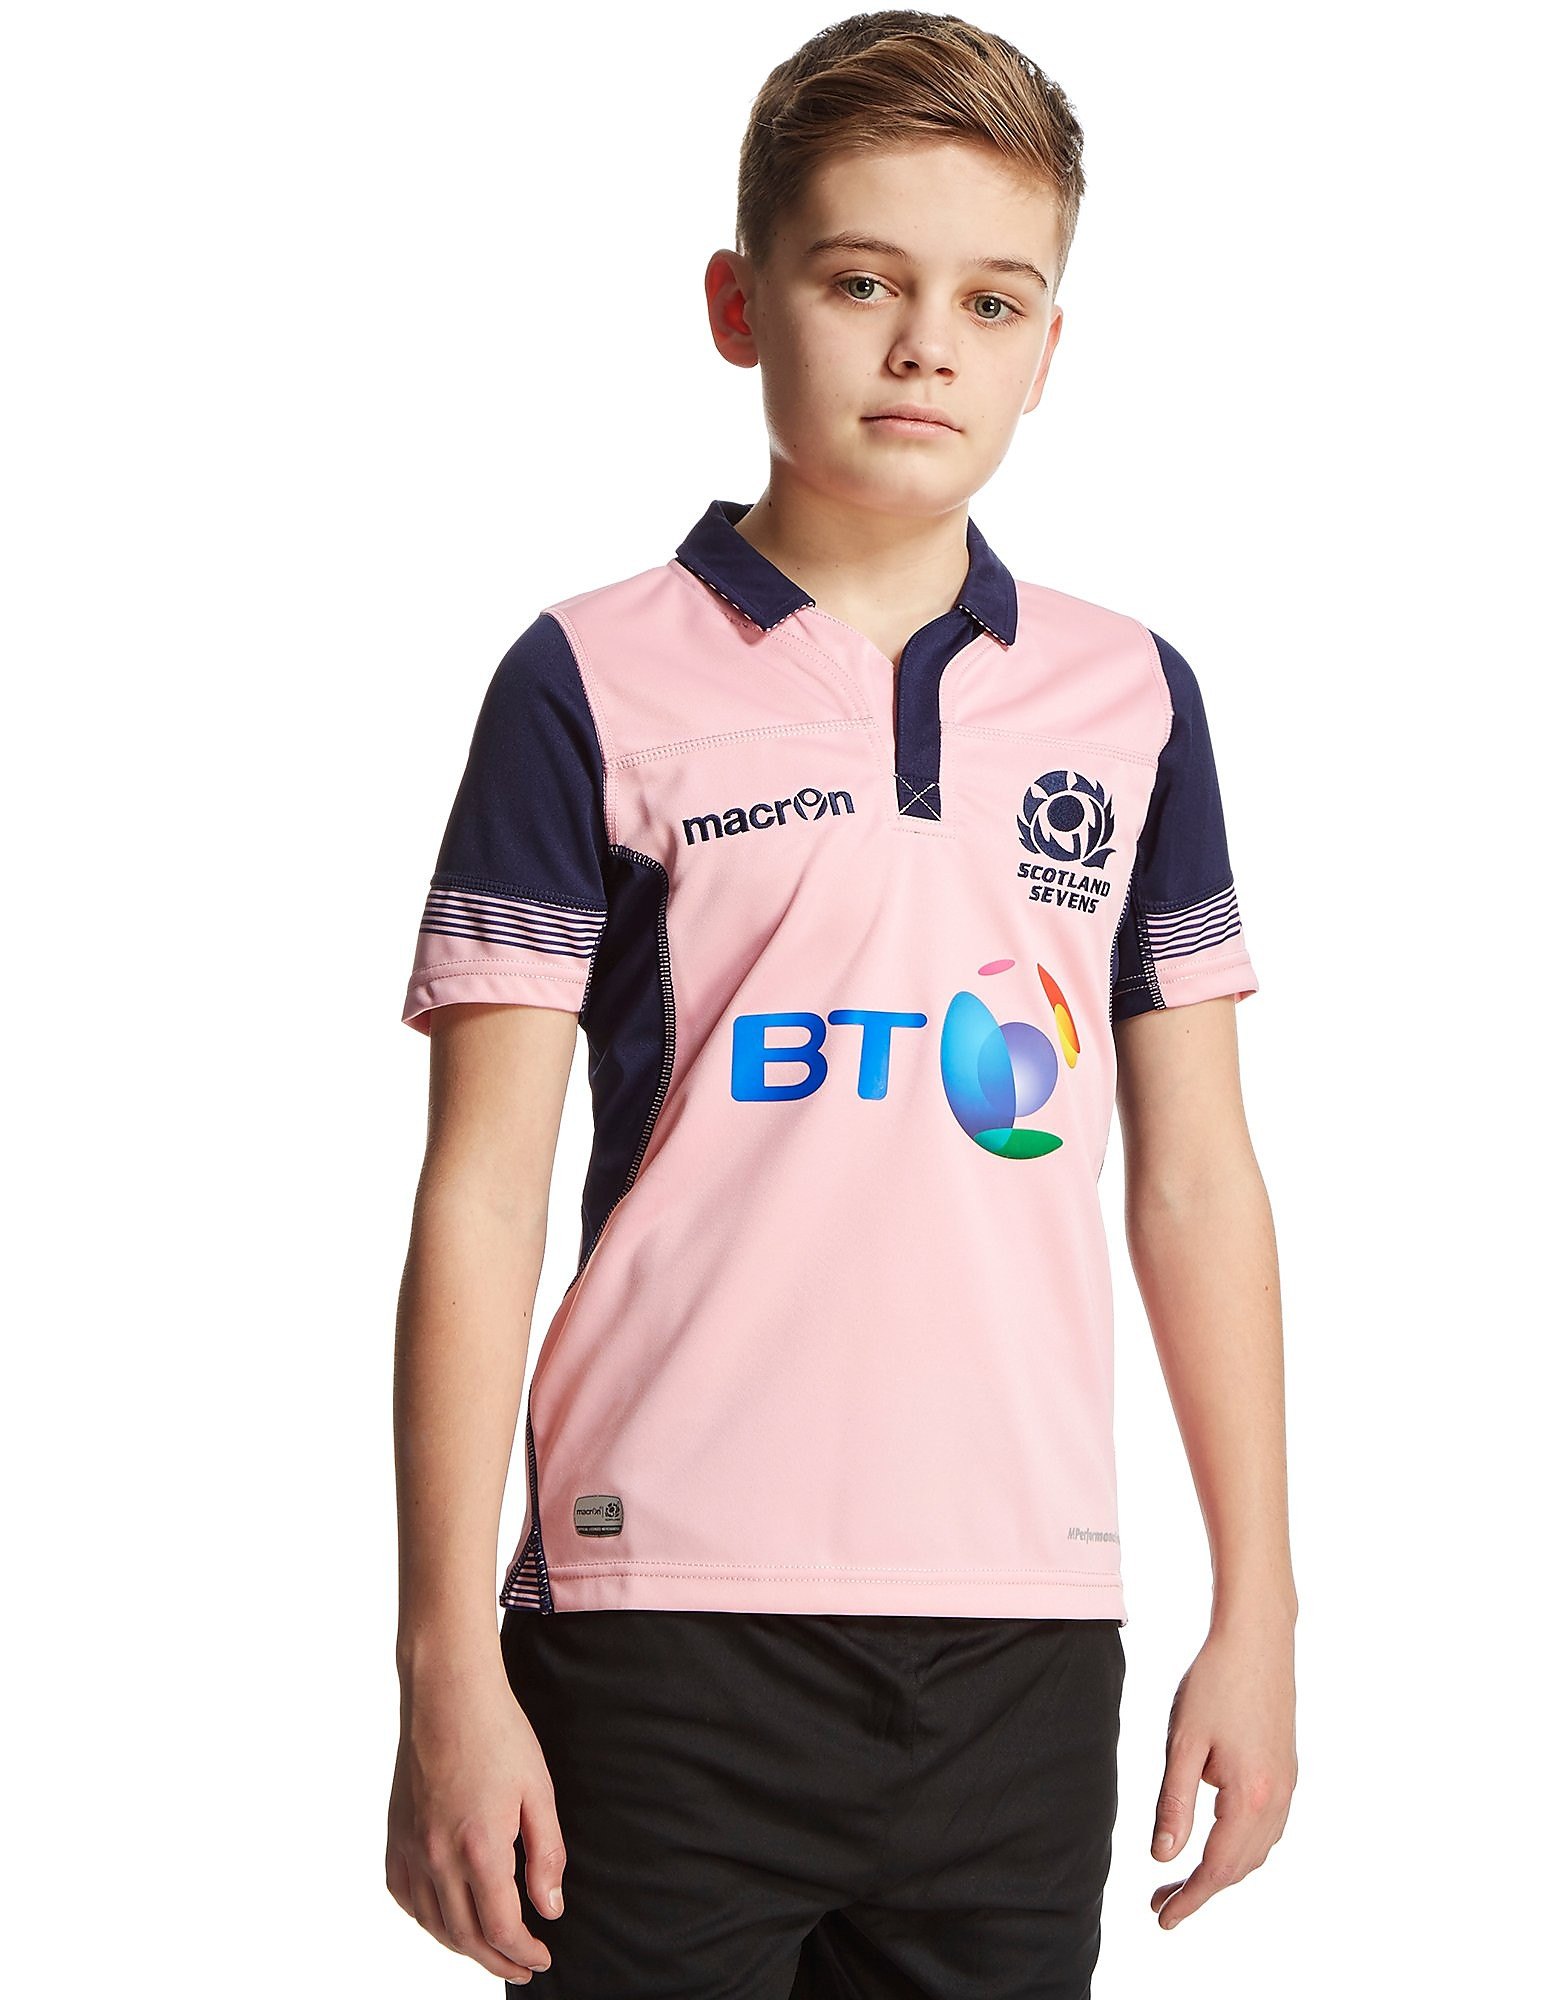 Macron Scotland RFU Away 2015/16 Sevens Shirt Junior